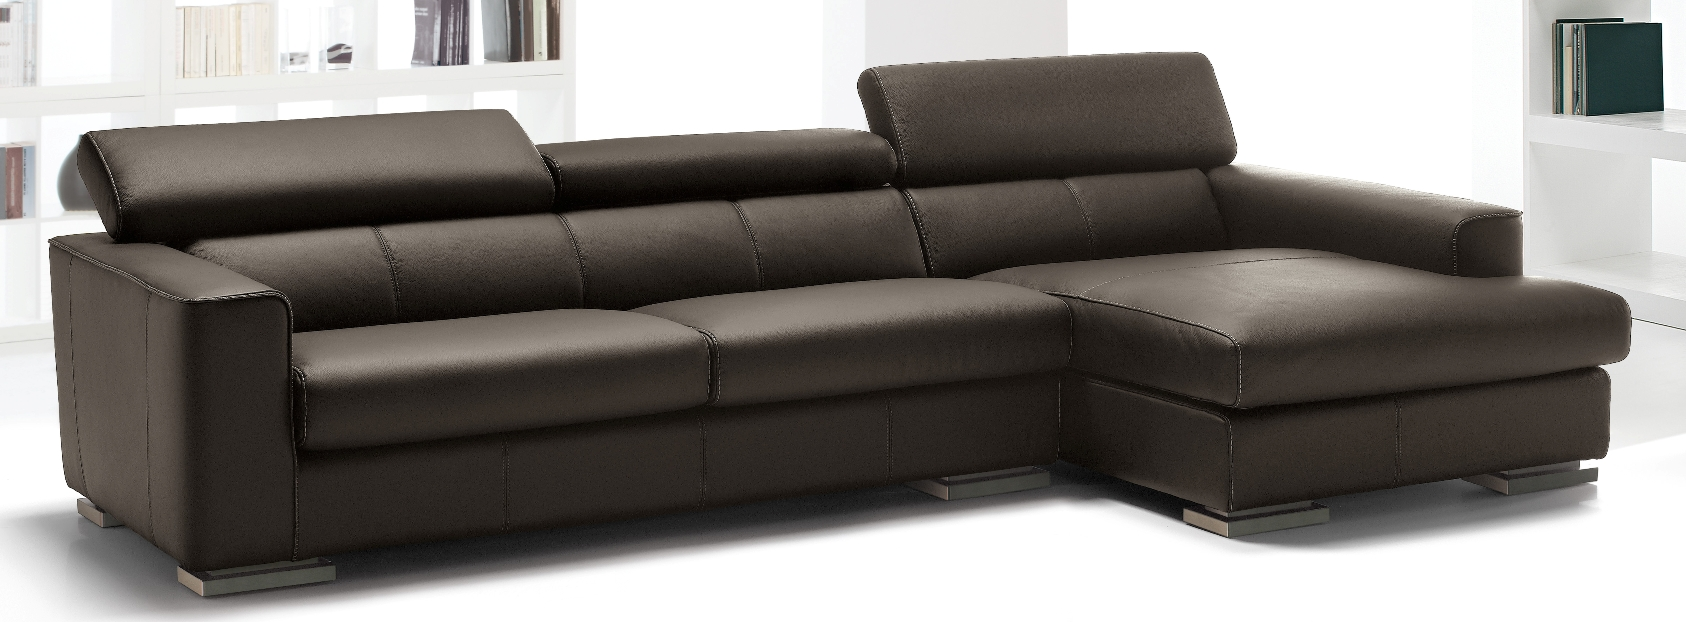 Modern luxury leather sofa fine home furnishings high for Modern luxury furniture